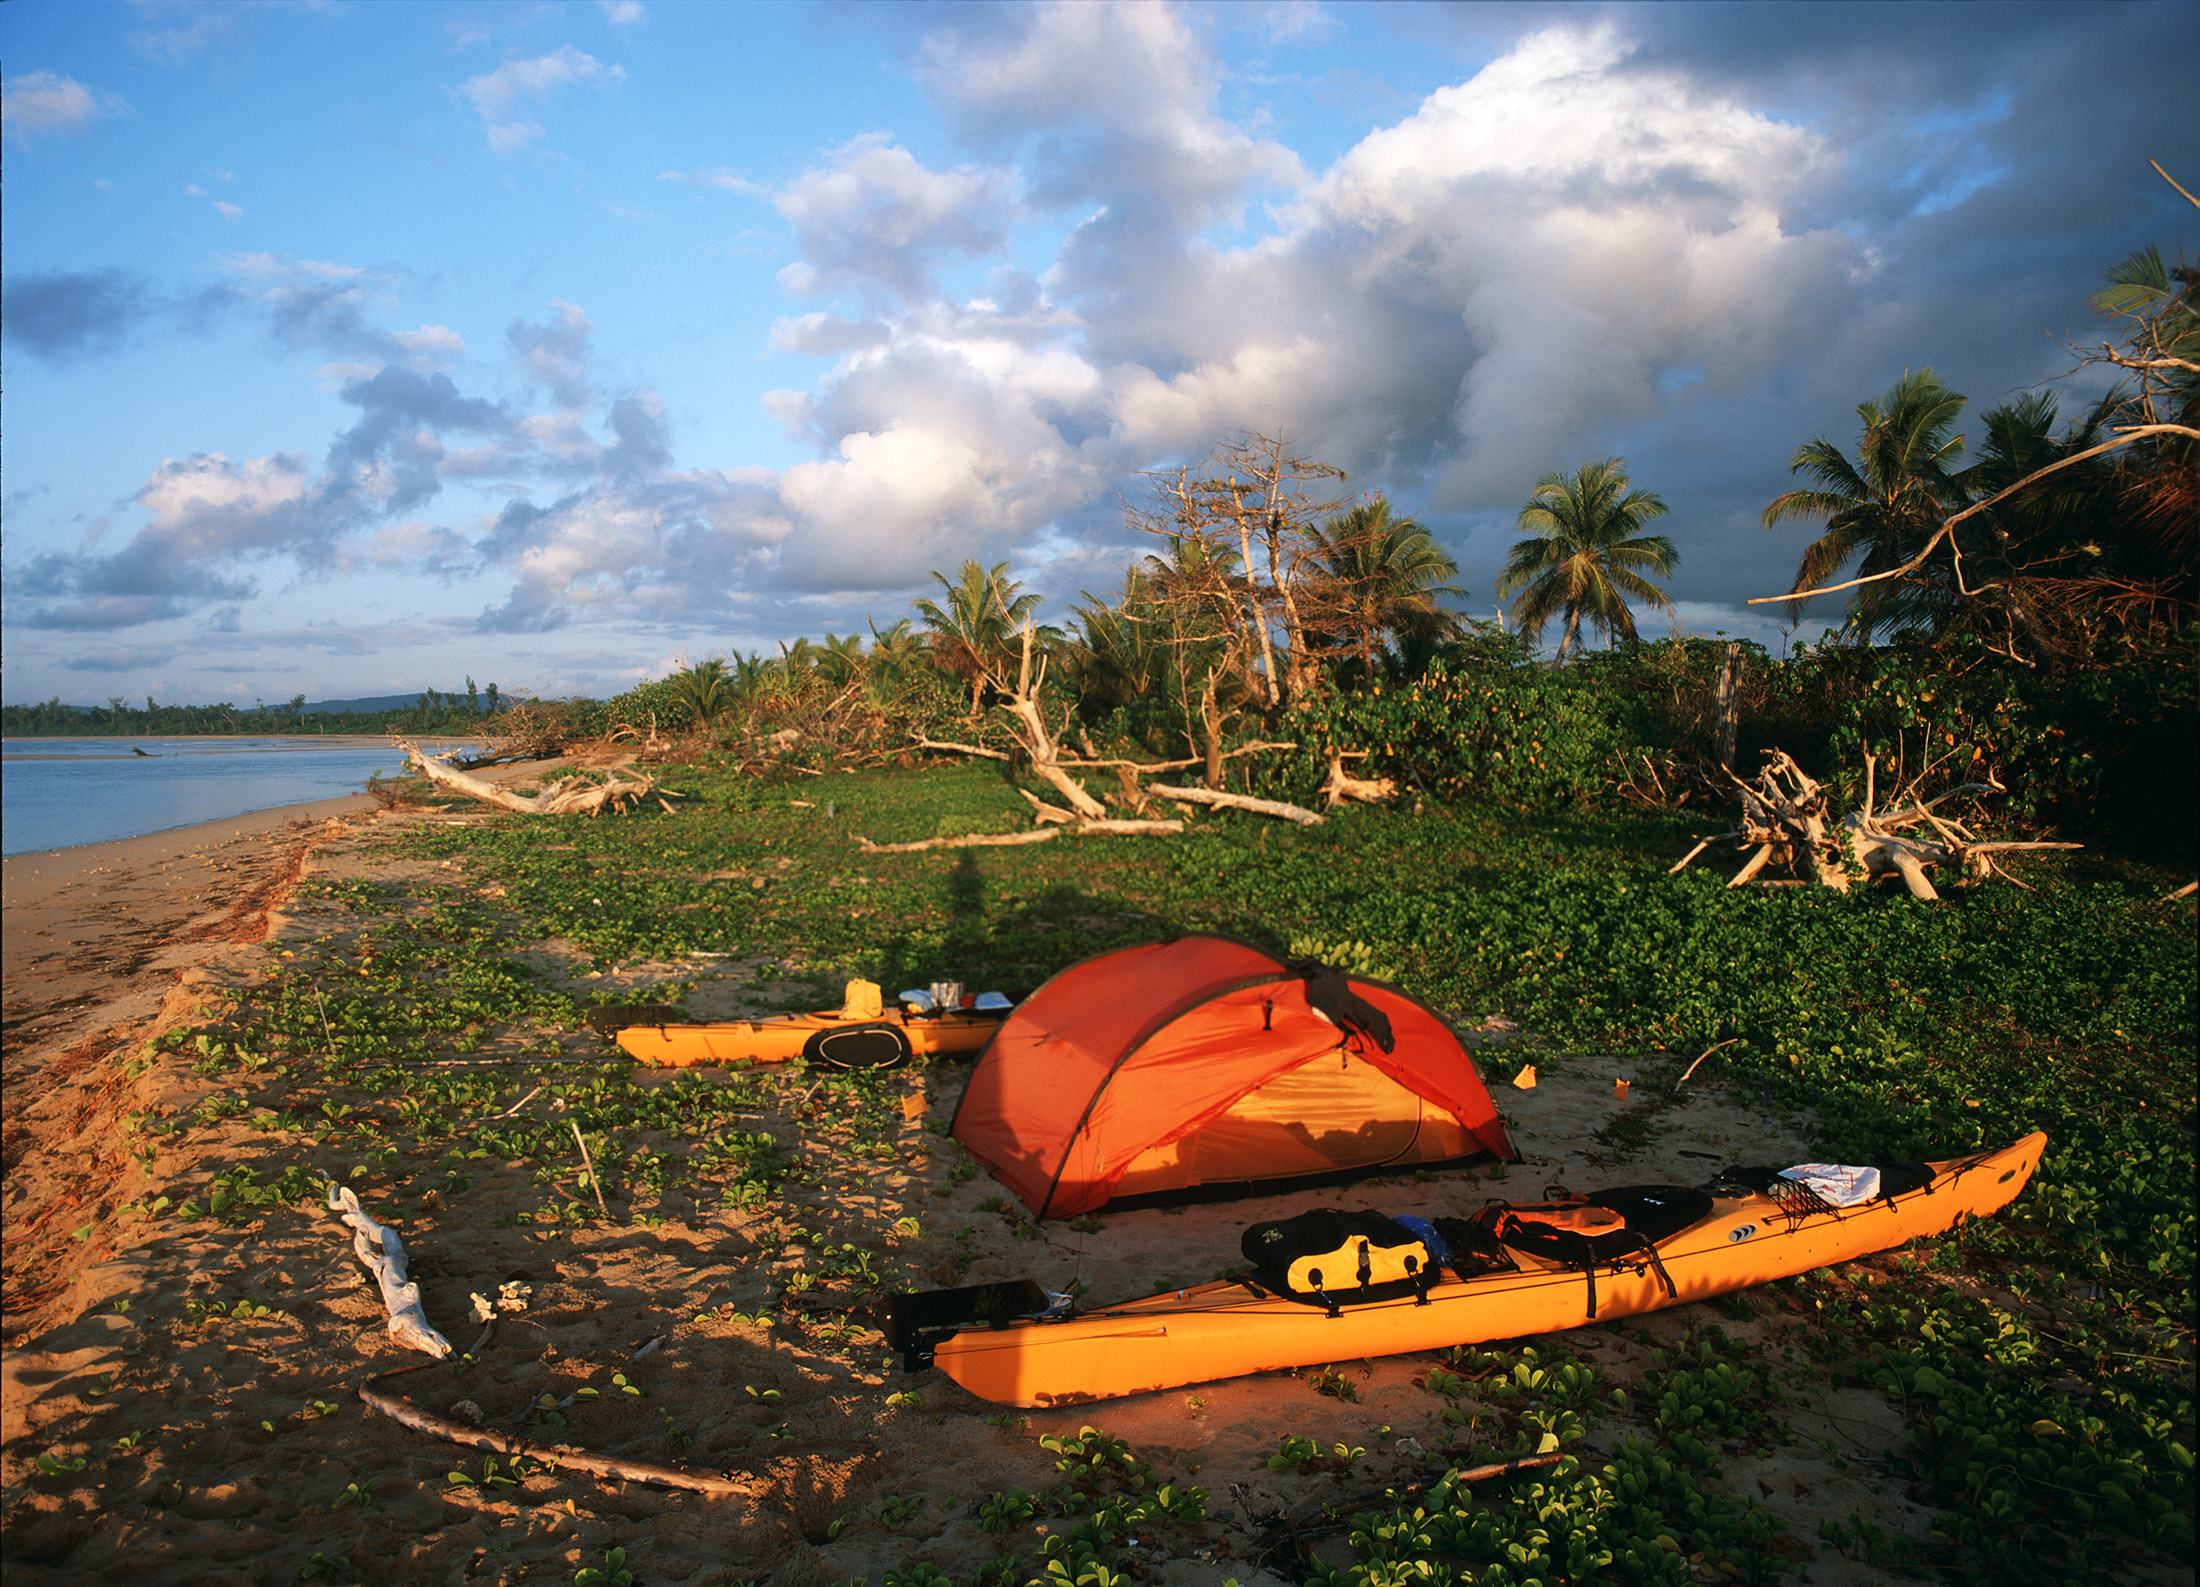 madagascar-beach-sea-kayak-tent